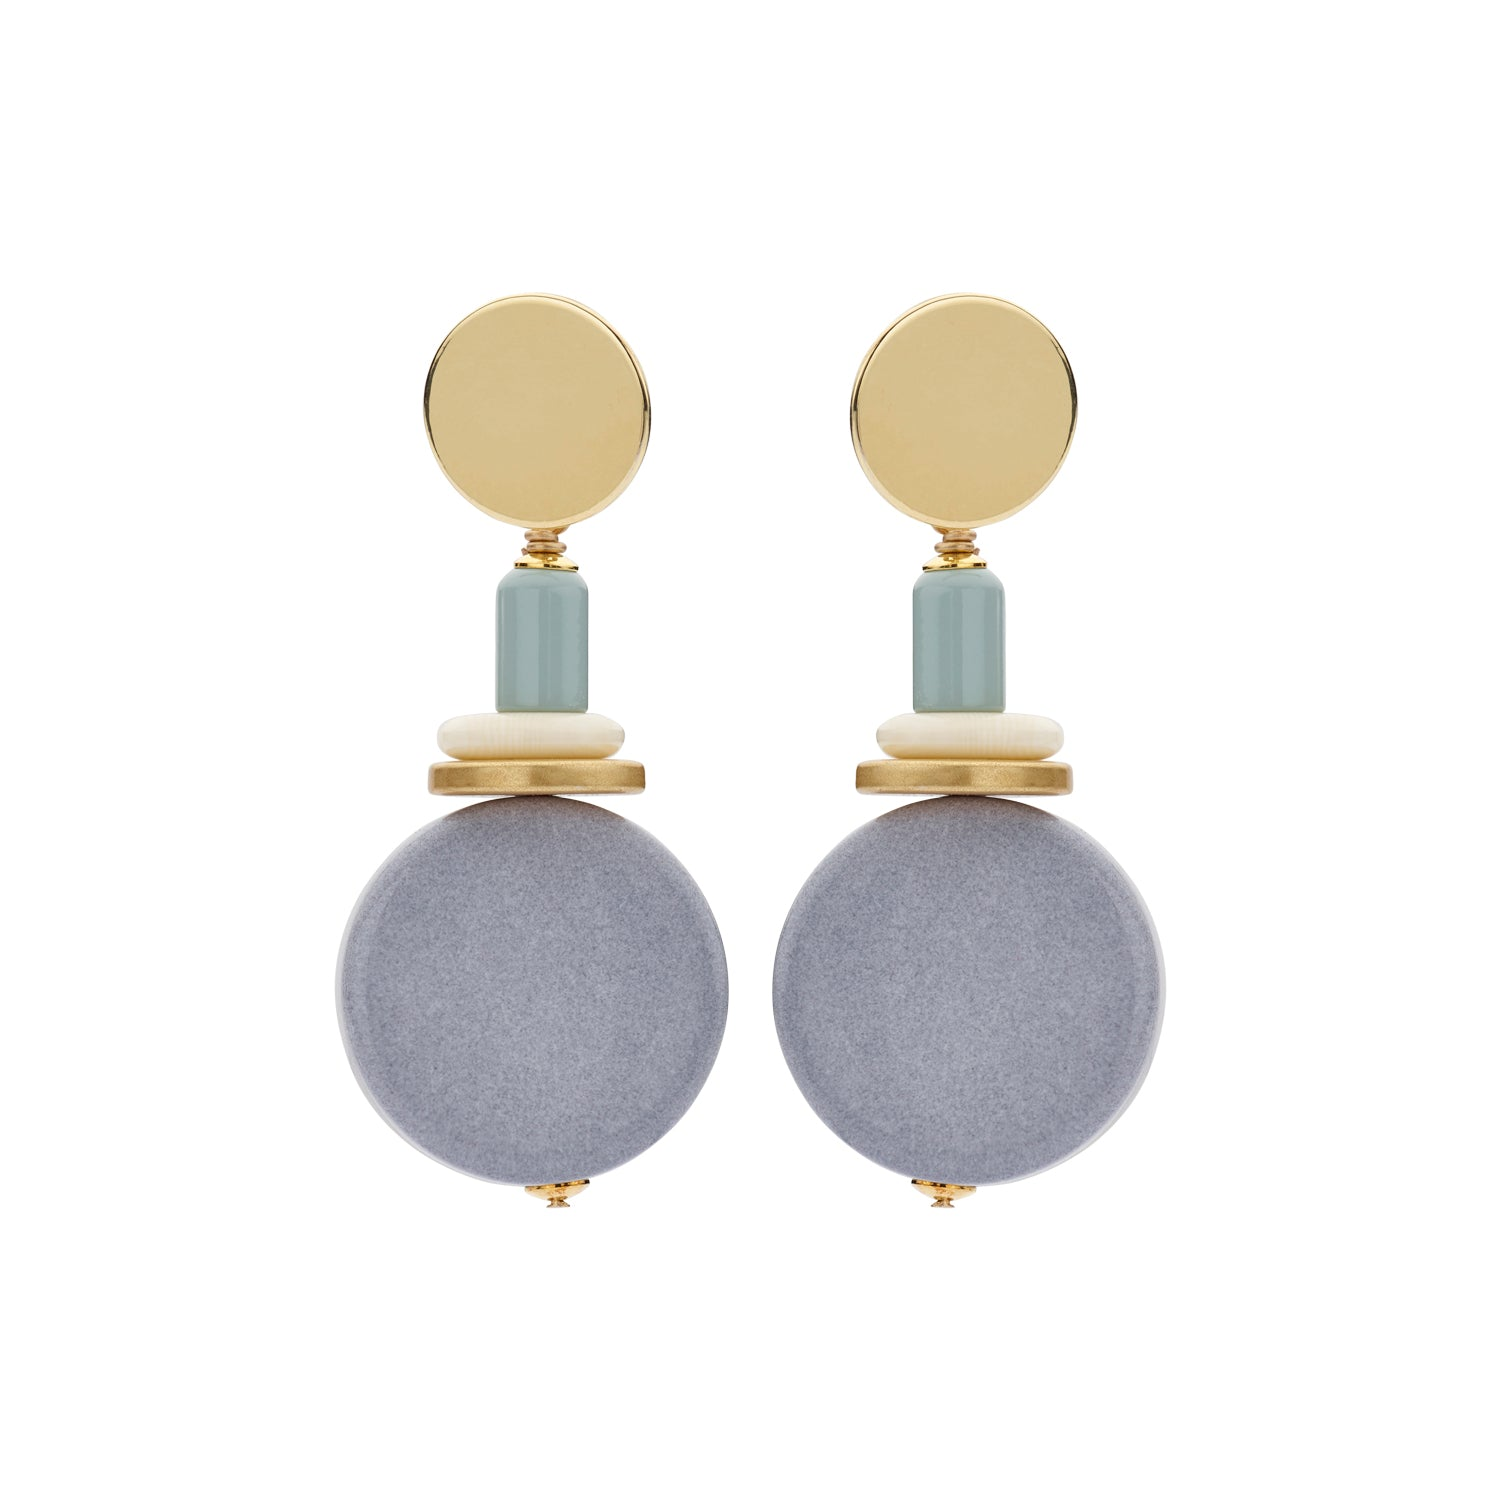 Naomi disk flat jeans earrings - Souvenirs de Pomme